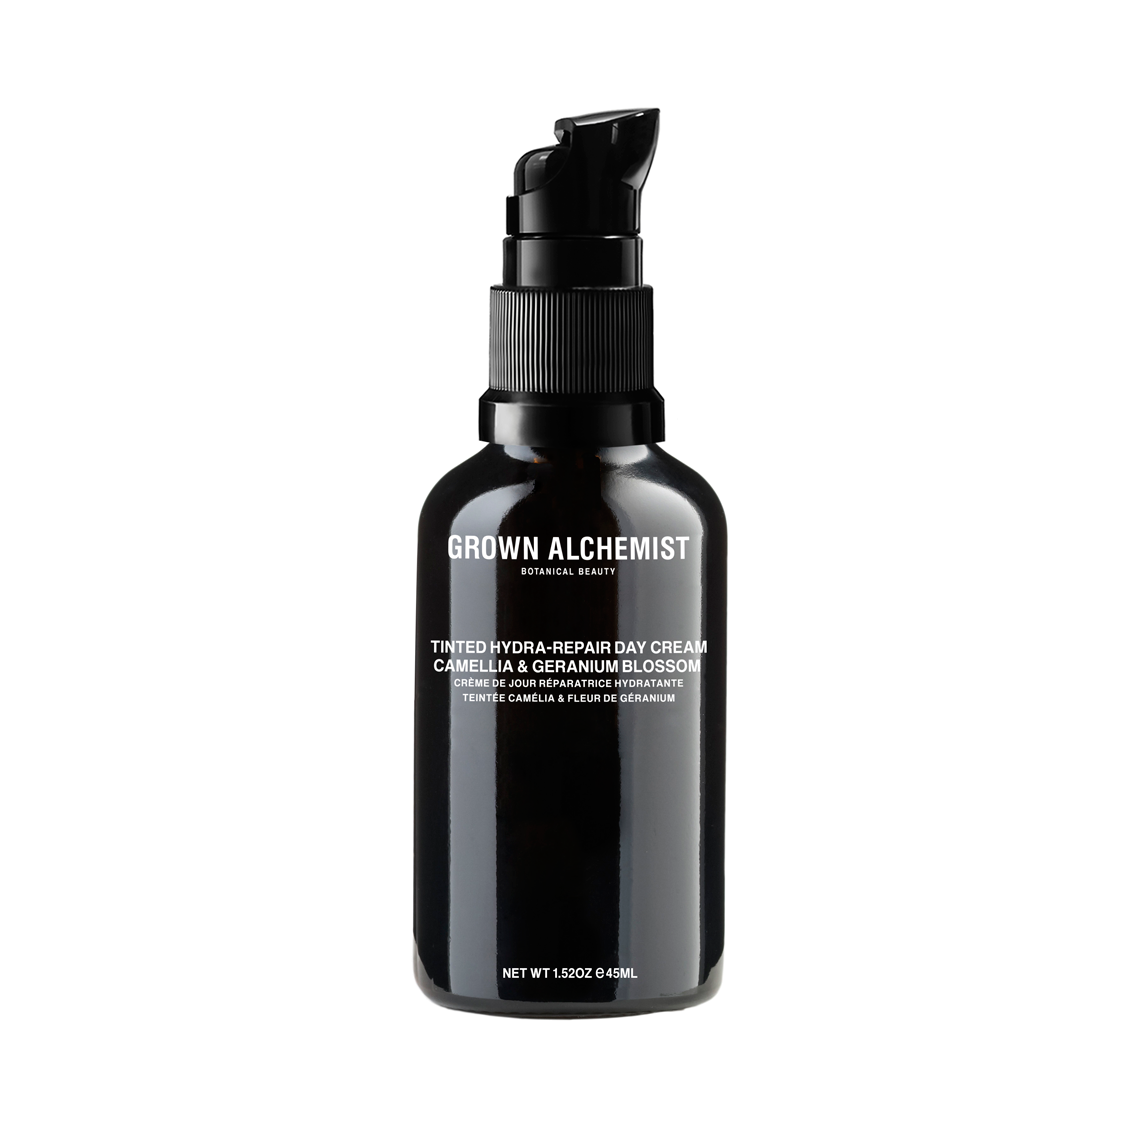 Tinted Hydra-Repair Day Cream by Grown Alchemist $49